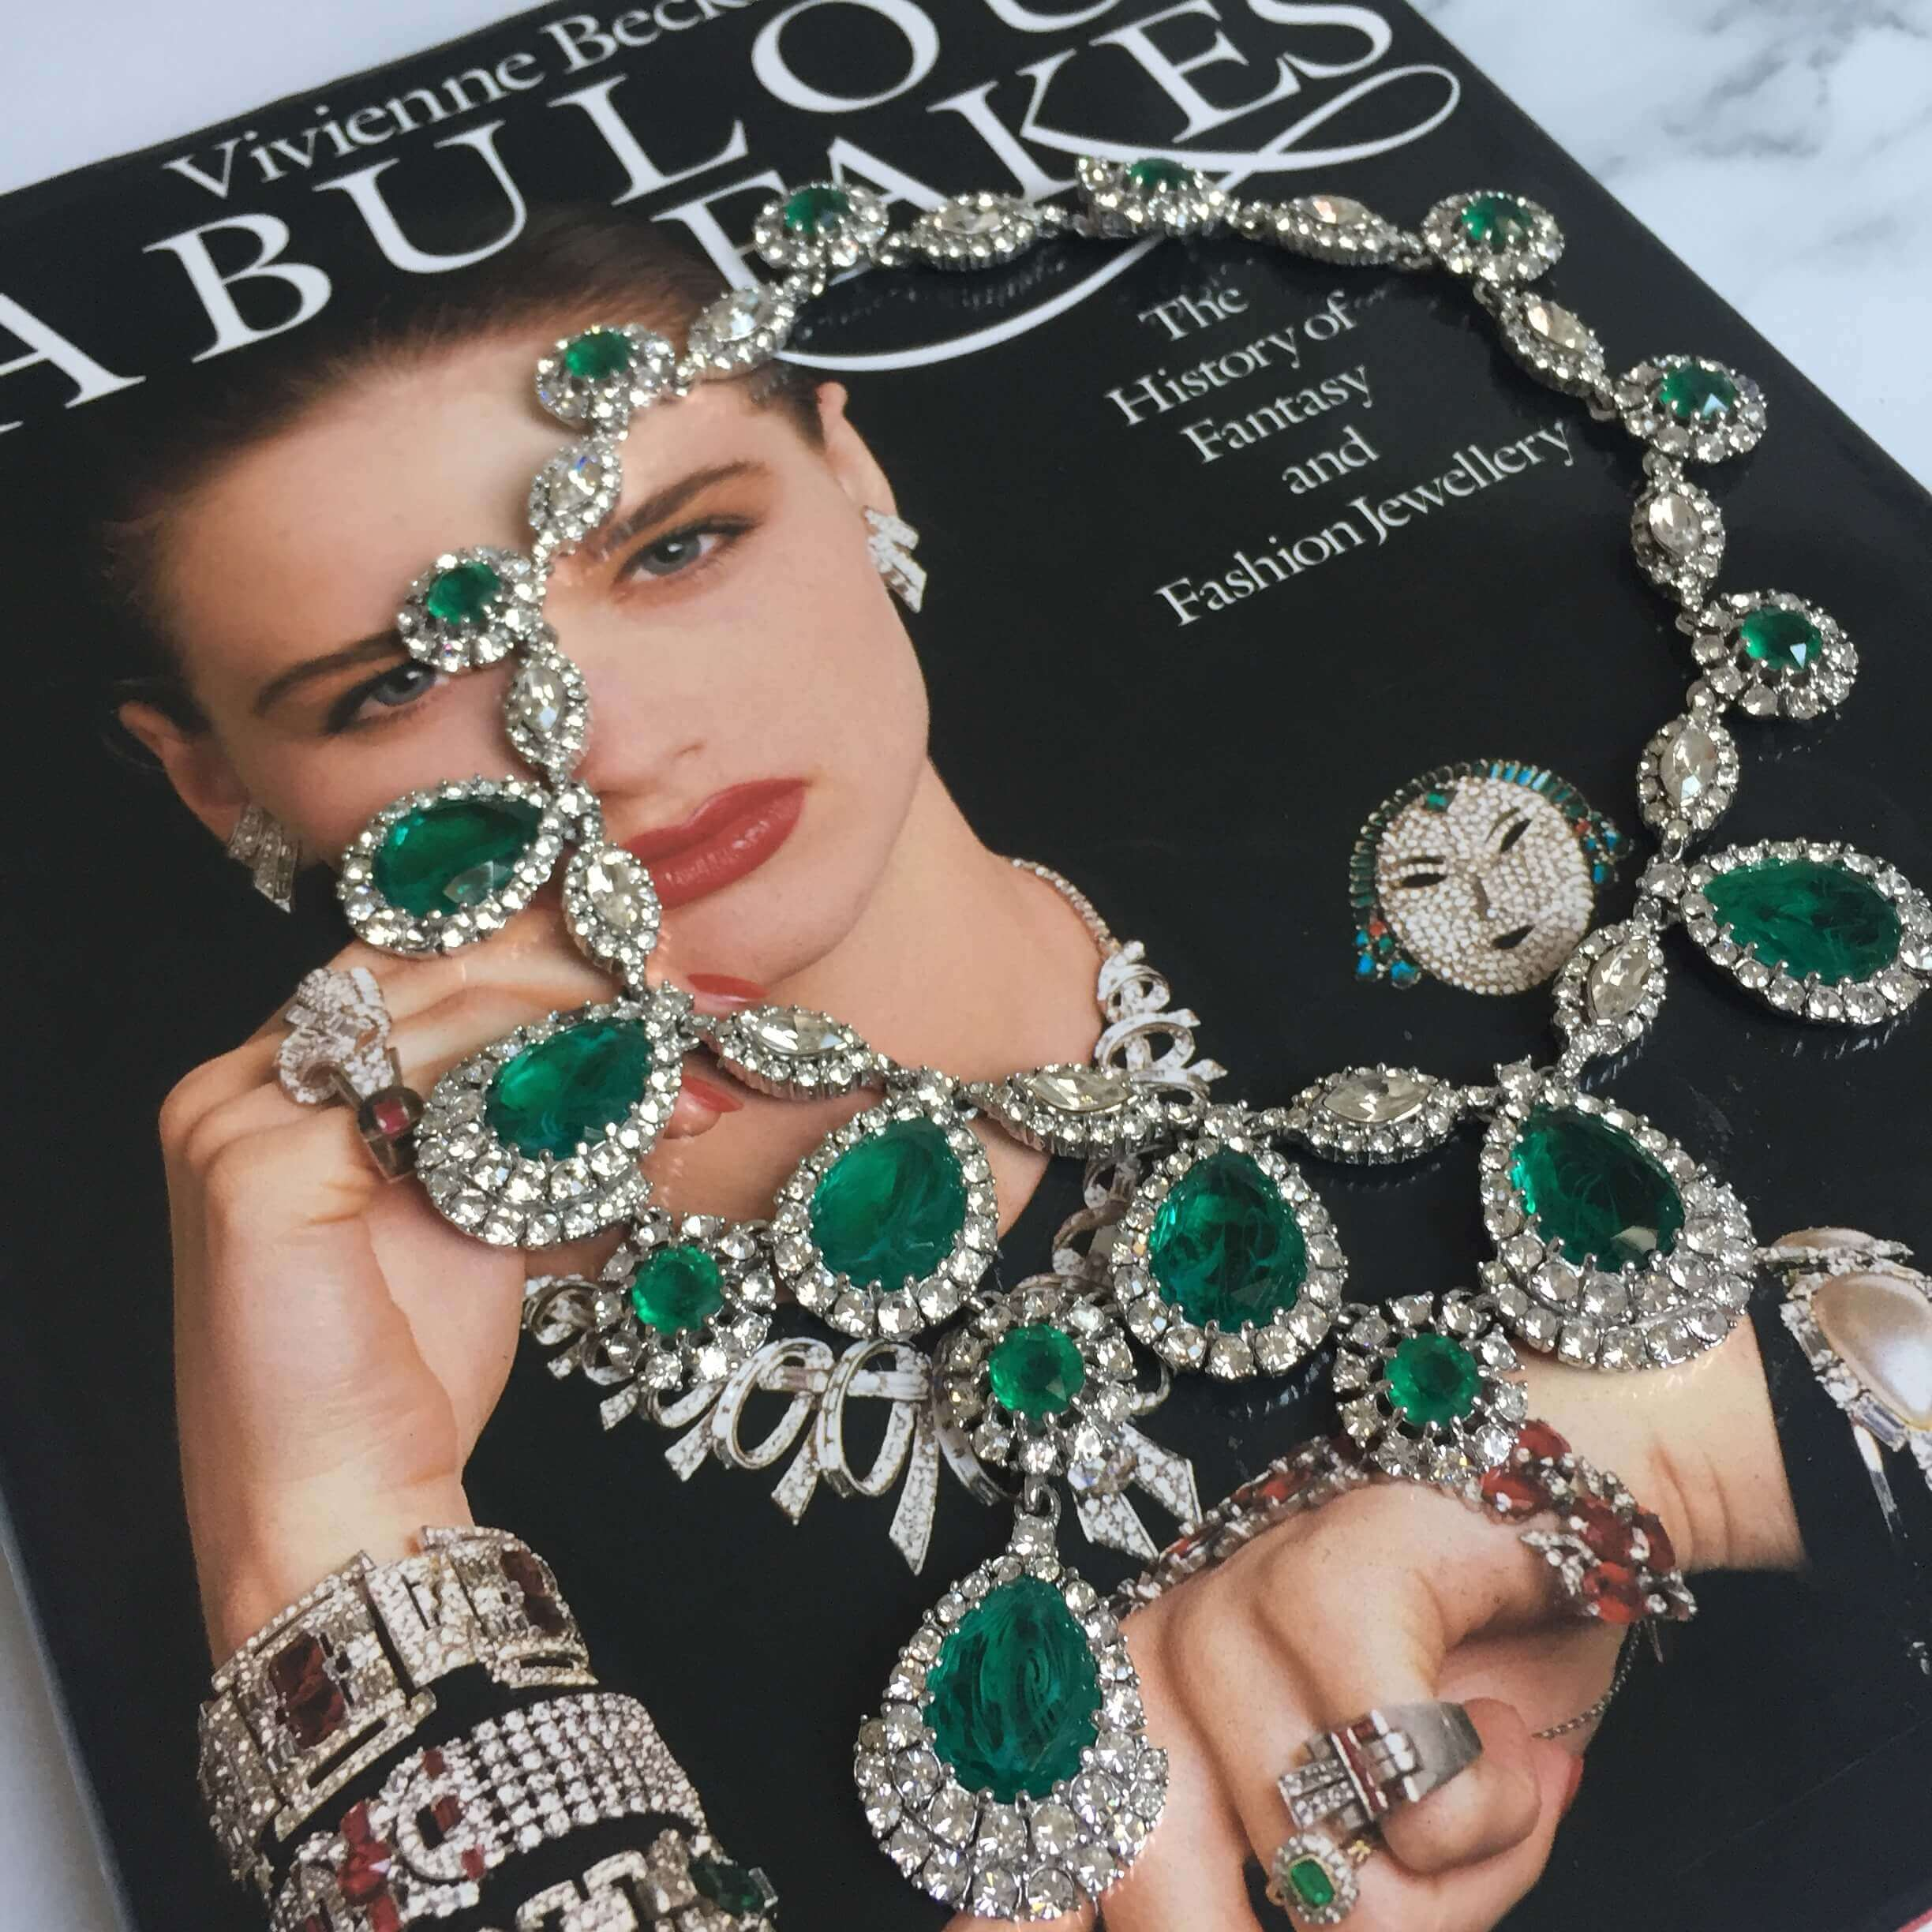 Unique Vintage Crystal - Jennifer Gibson Jewellery Look Book